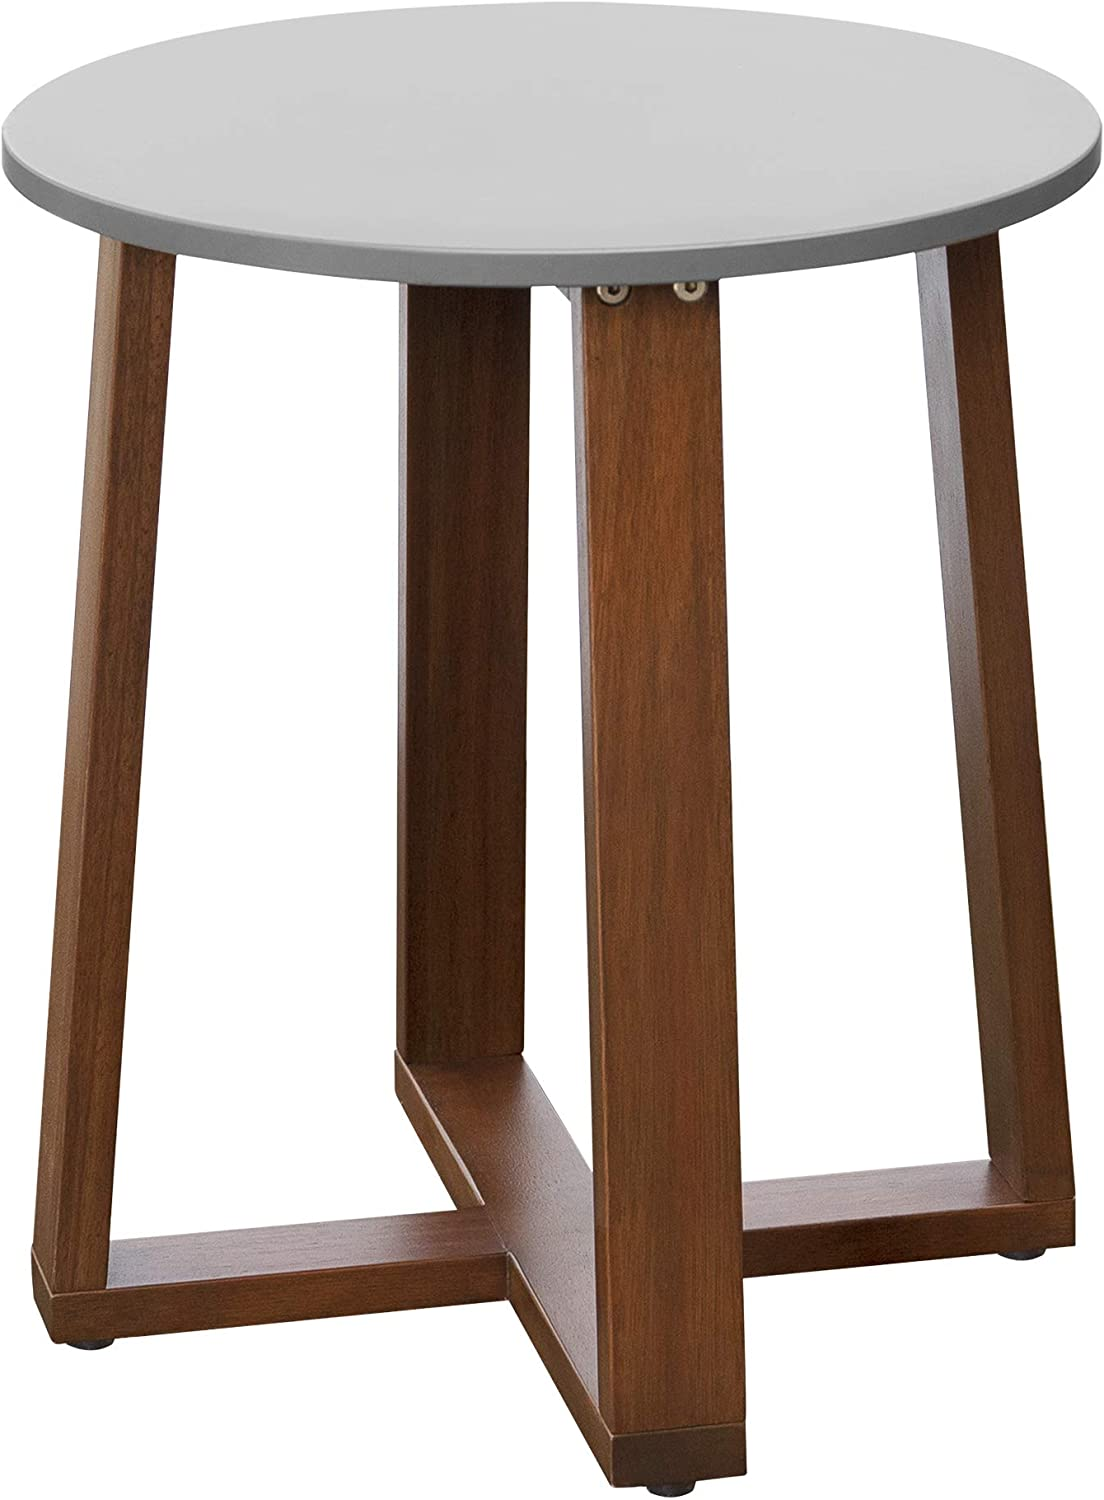 Peaktop Pt Of0014 Eucalyptus Solid Wood Patio Side Table Round Modern For Small Space Outdoor Garden Backyard Gray In Taiwan B08vblt3 - Small Round Wooden Garden Coffee Table